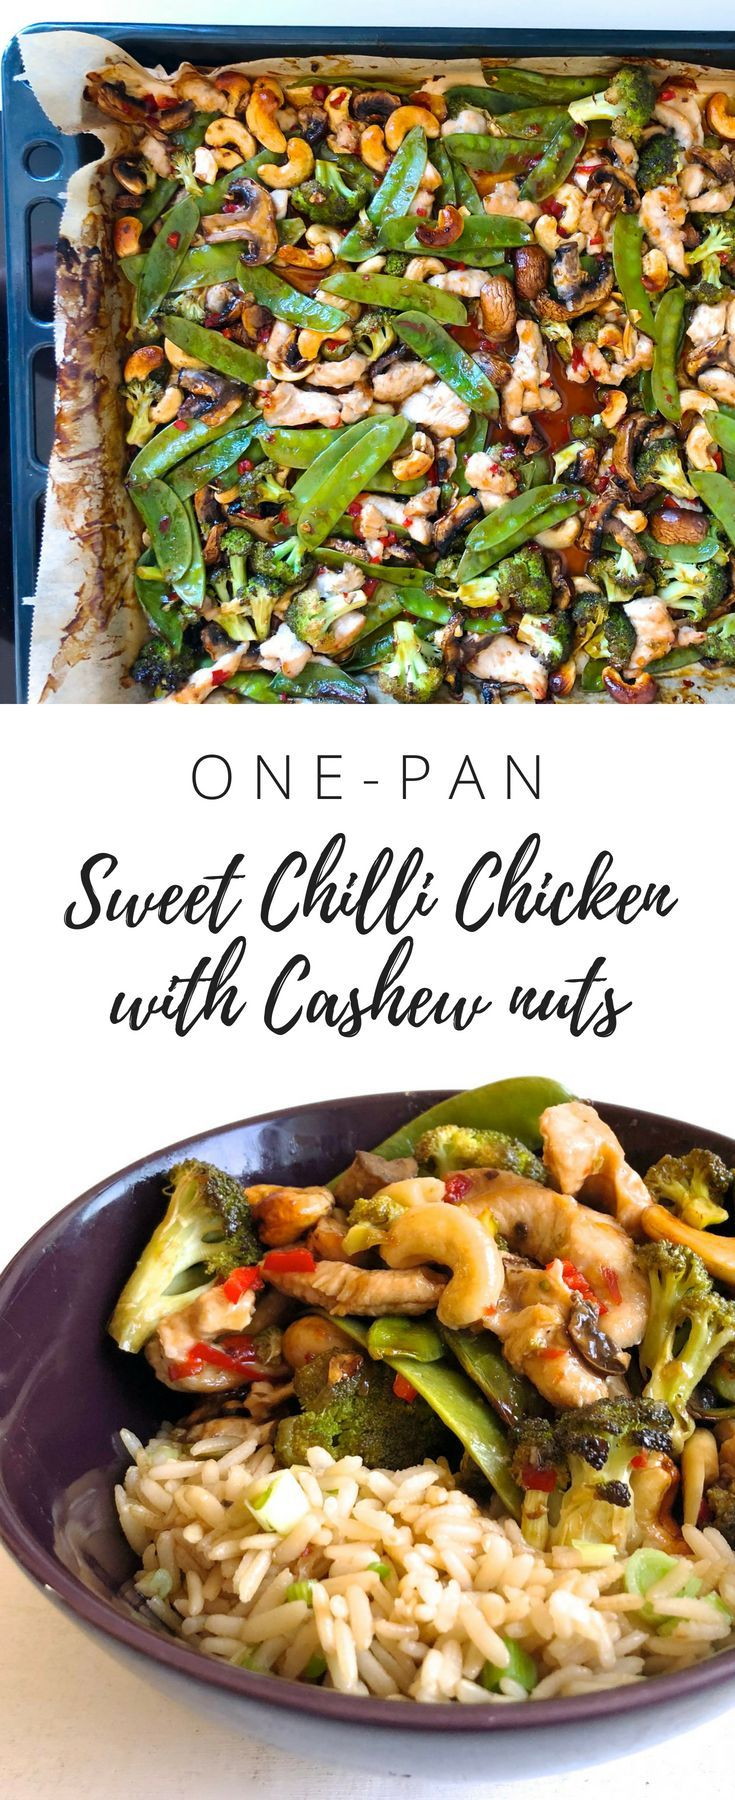 One-pan Sweet Chilli Chicken with Cashew Nuts images